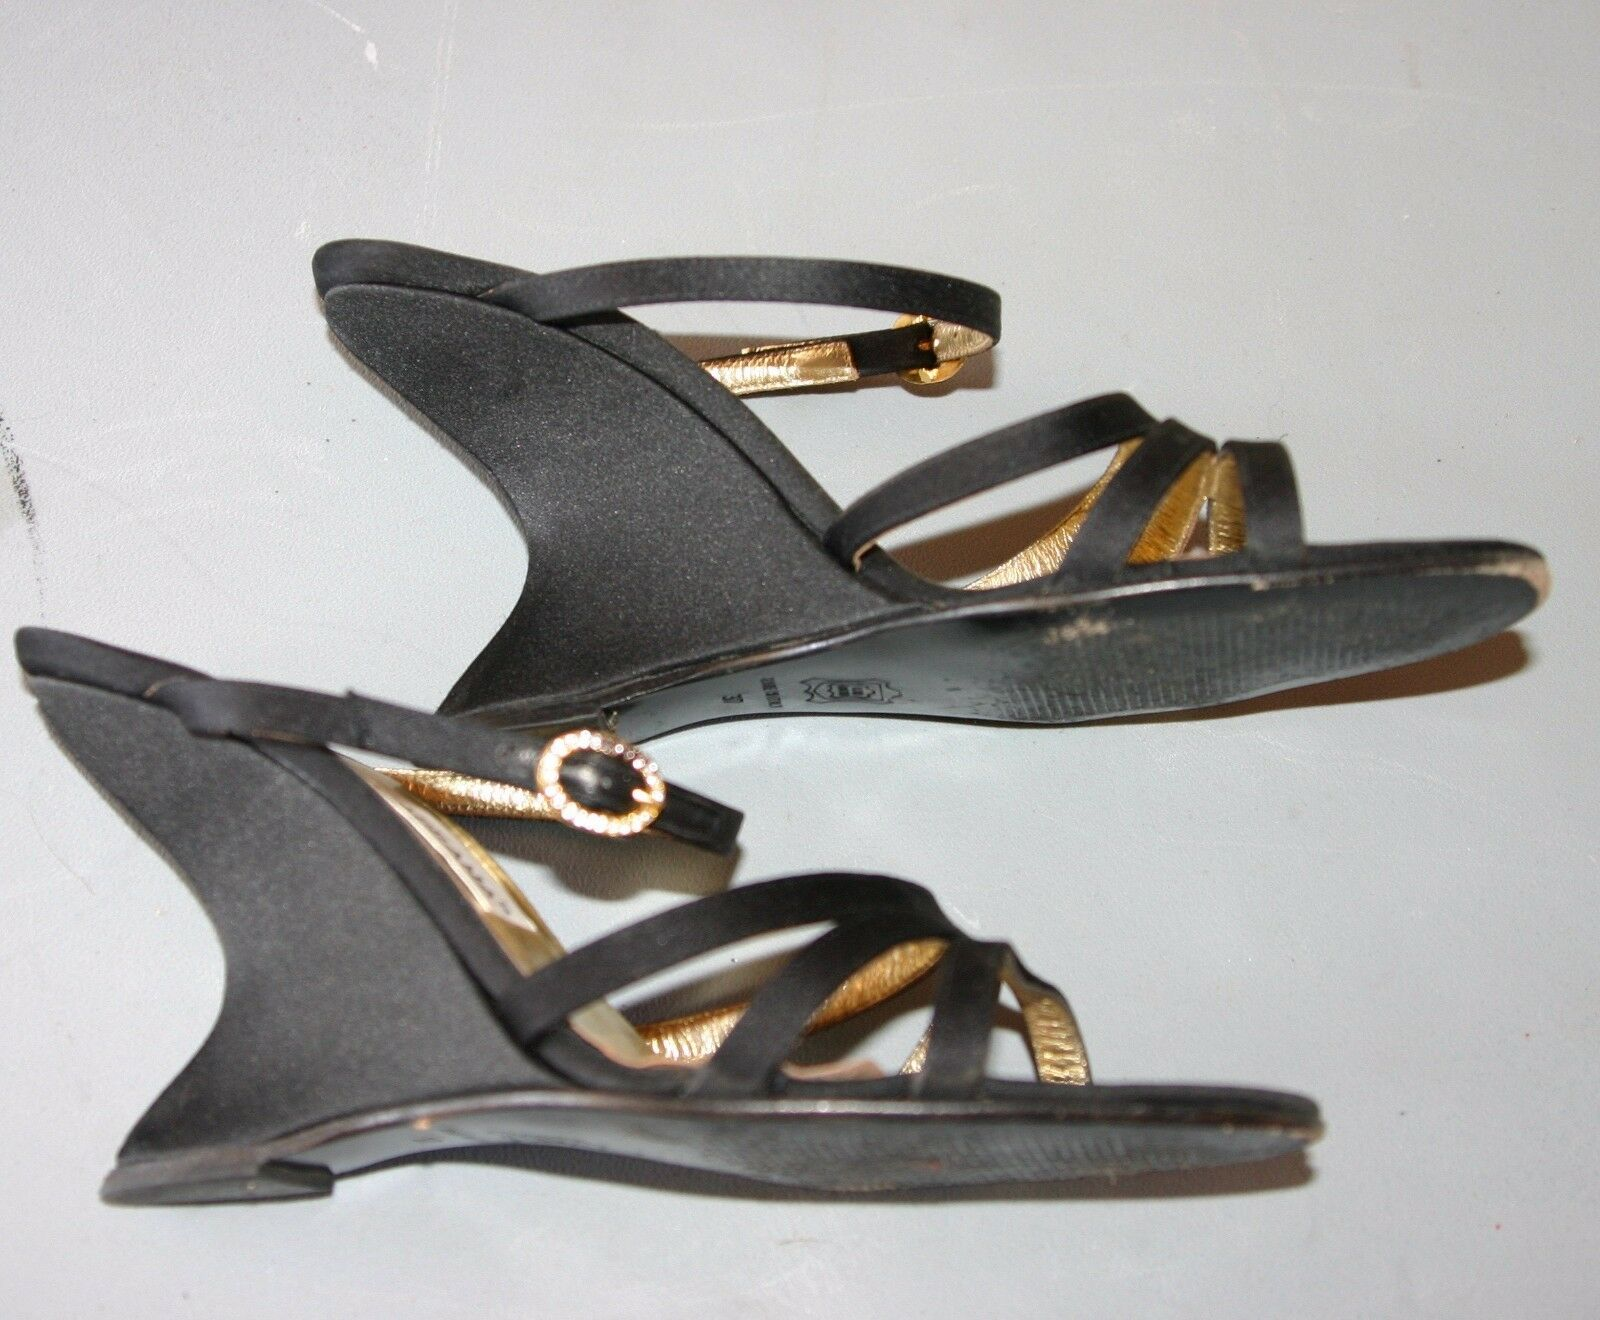 DOLCE EXCL & GABBANA Damenschuhe BLACK WEDGE SANDALS - EXCL DOLCE COND- WORN ONCE-SIZE 37 2724b8